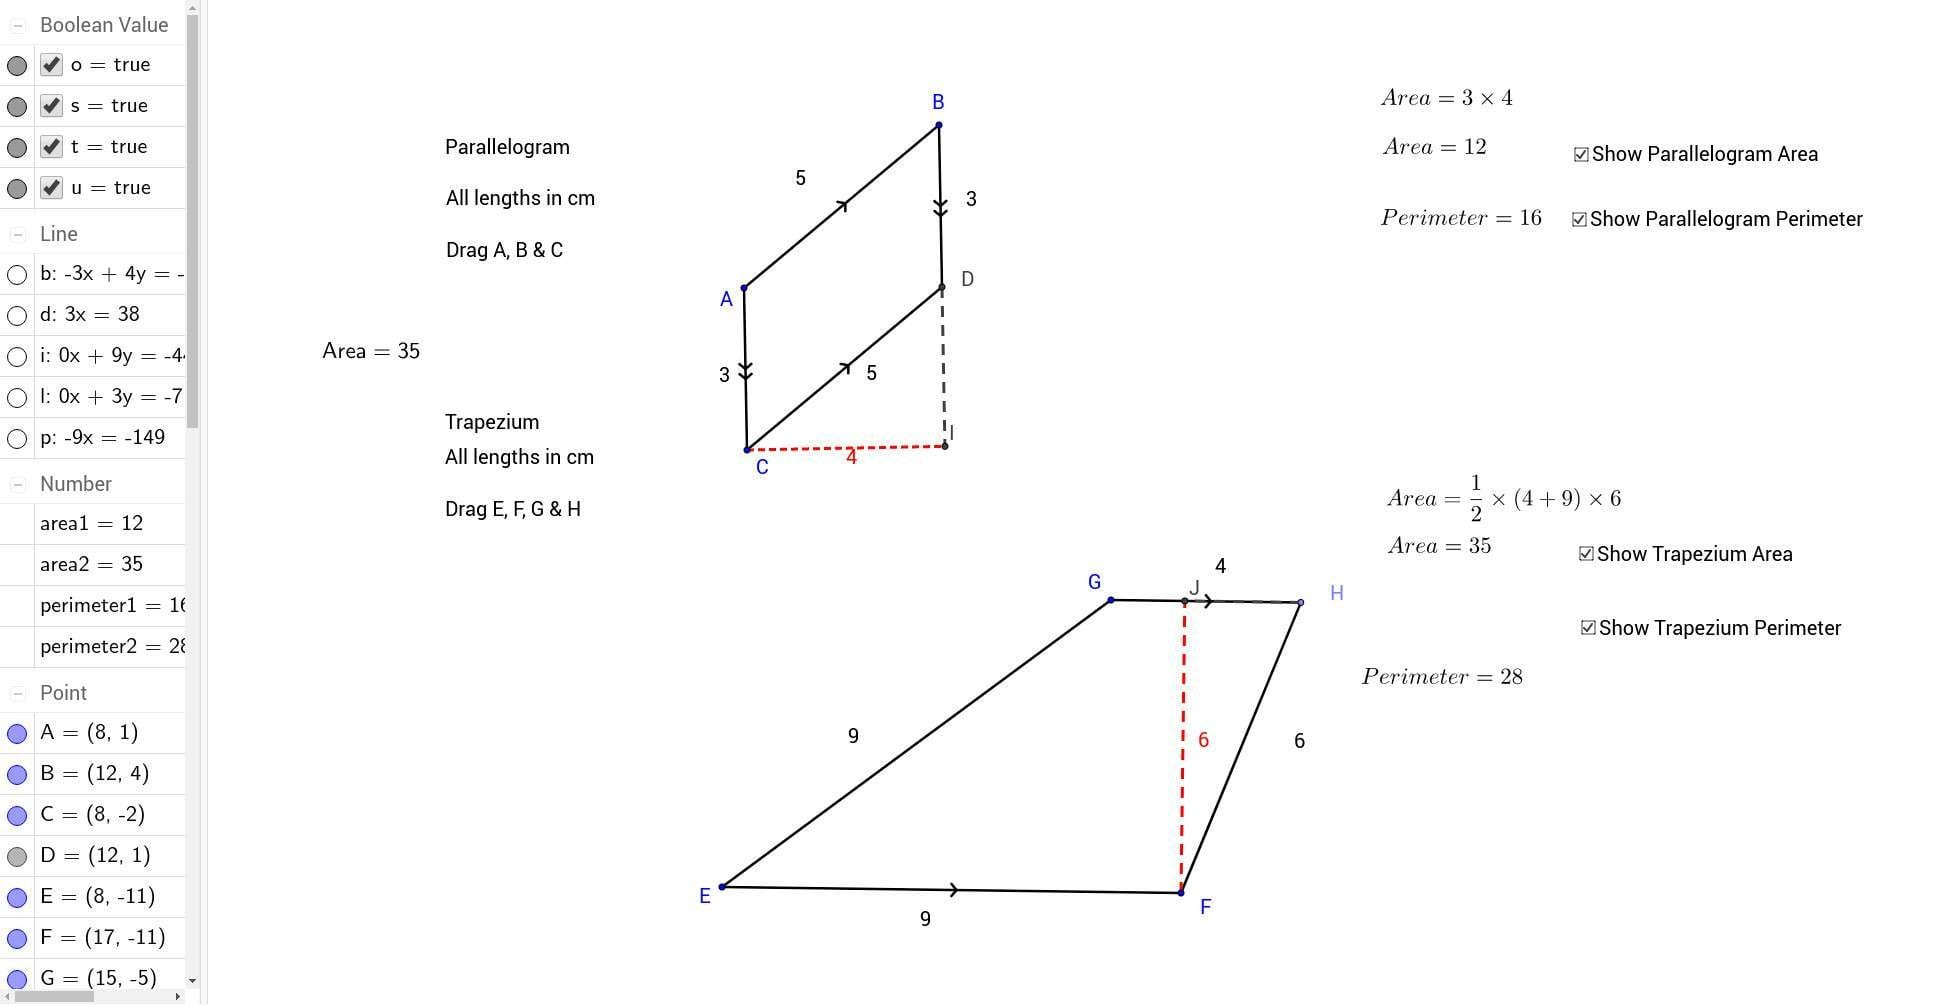 Proving Triangles Congruent Worksheet Answers  Worksheet Idea Template Pertaining To Proving Triangles Congruent Worksheet Answers